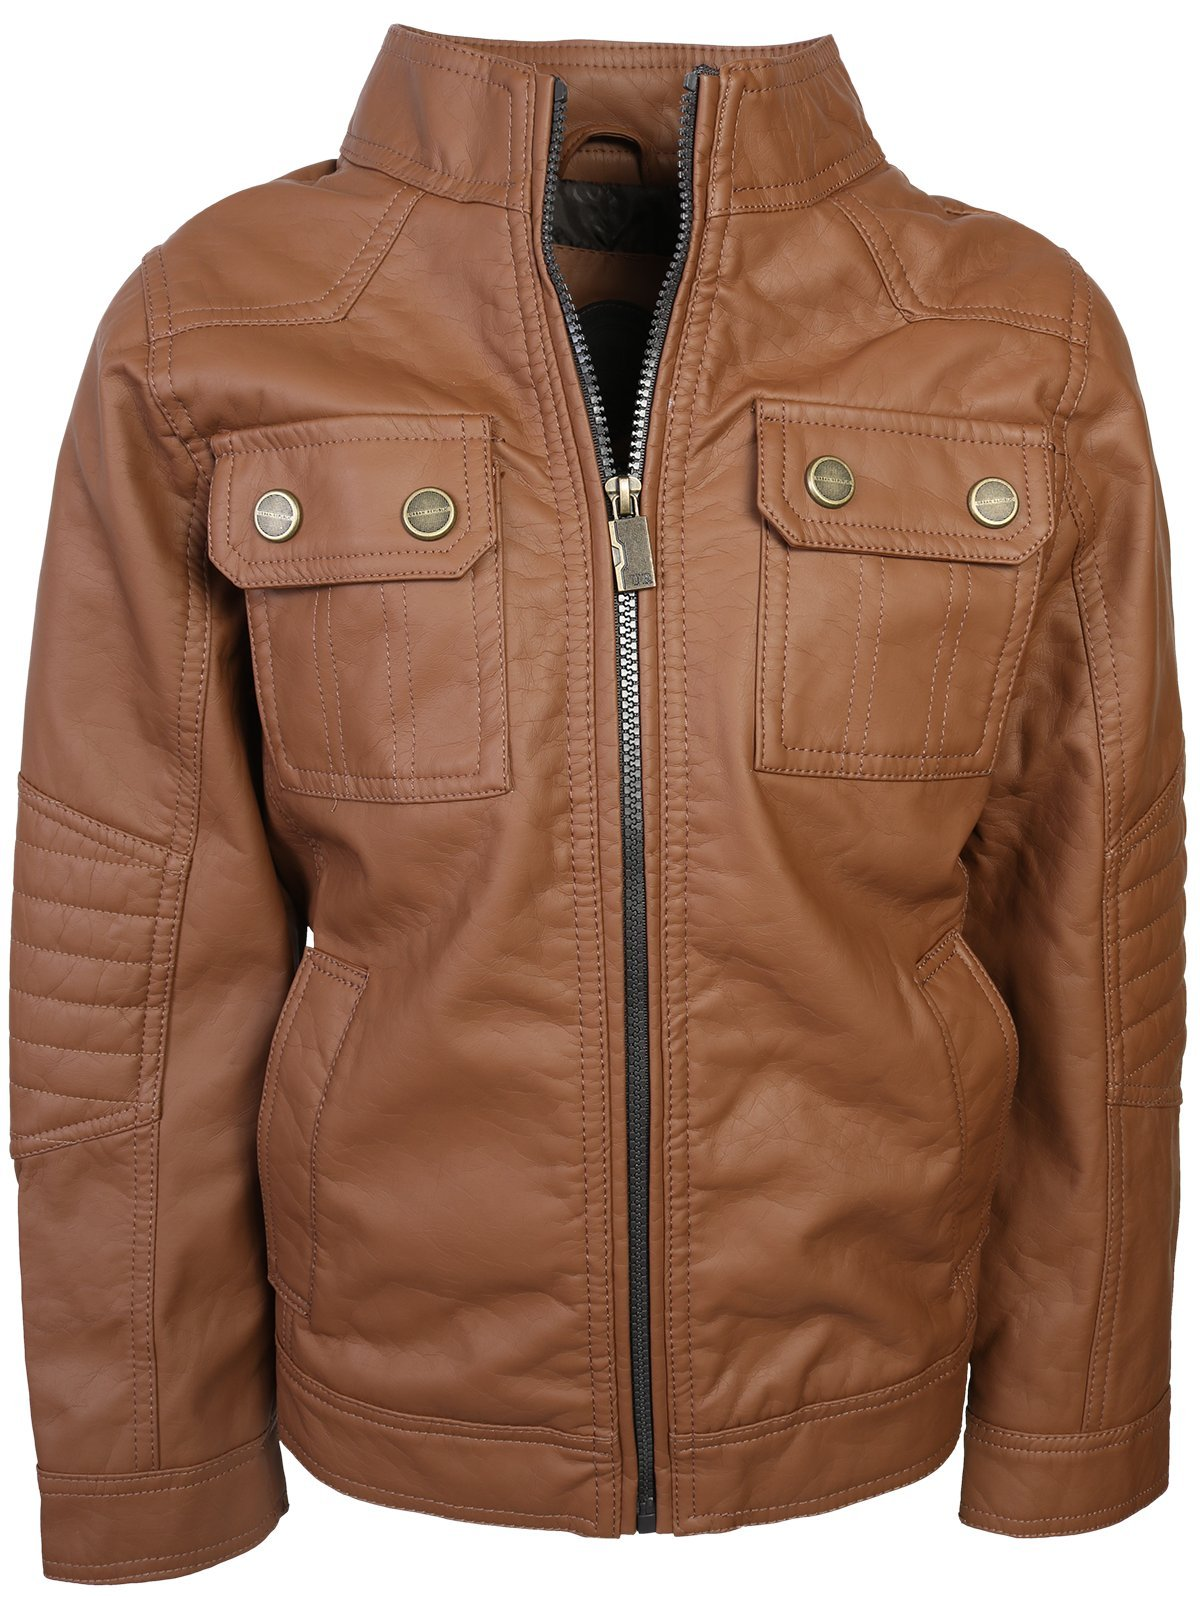 Urban Republic Boy's Faux Leather Officer Jacket, Cognac, Size 10/12'